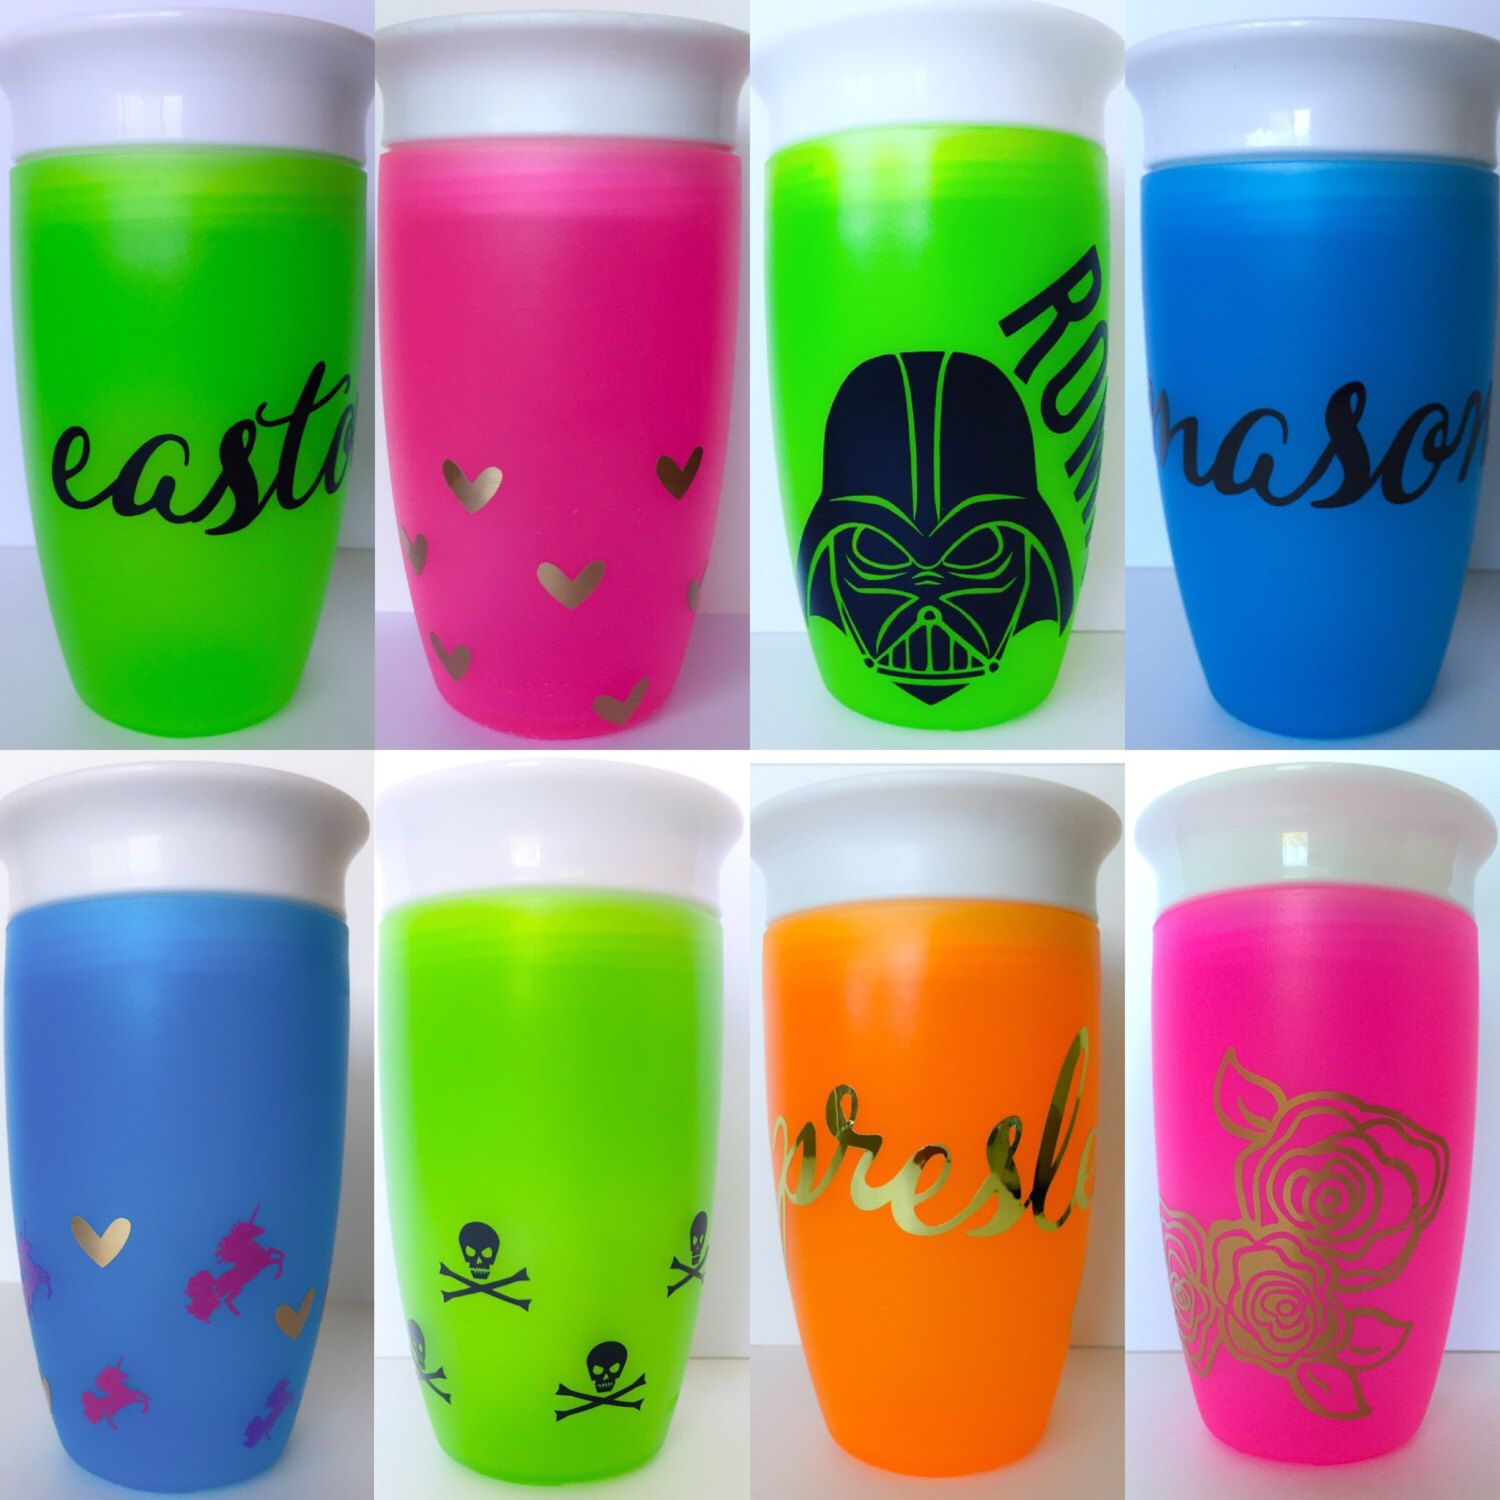 Pin by Aimee Kinsfater on Cups | Personalized cups